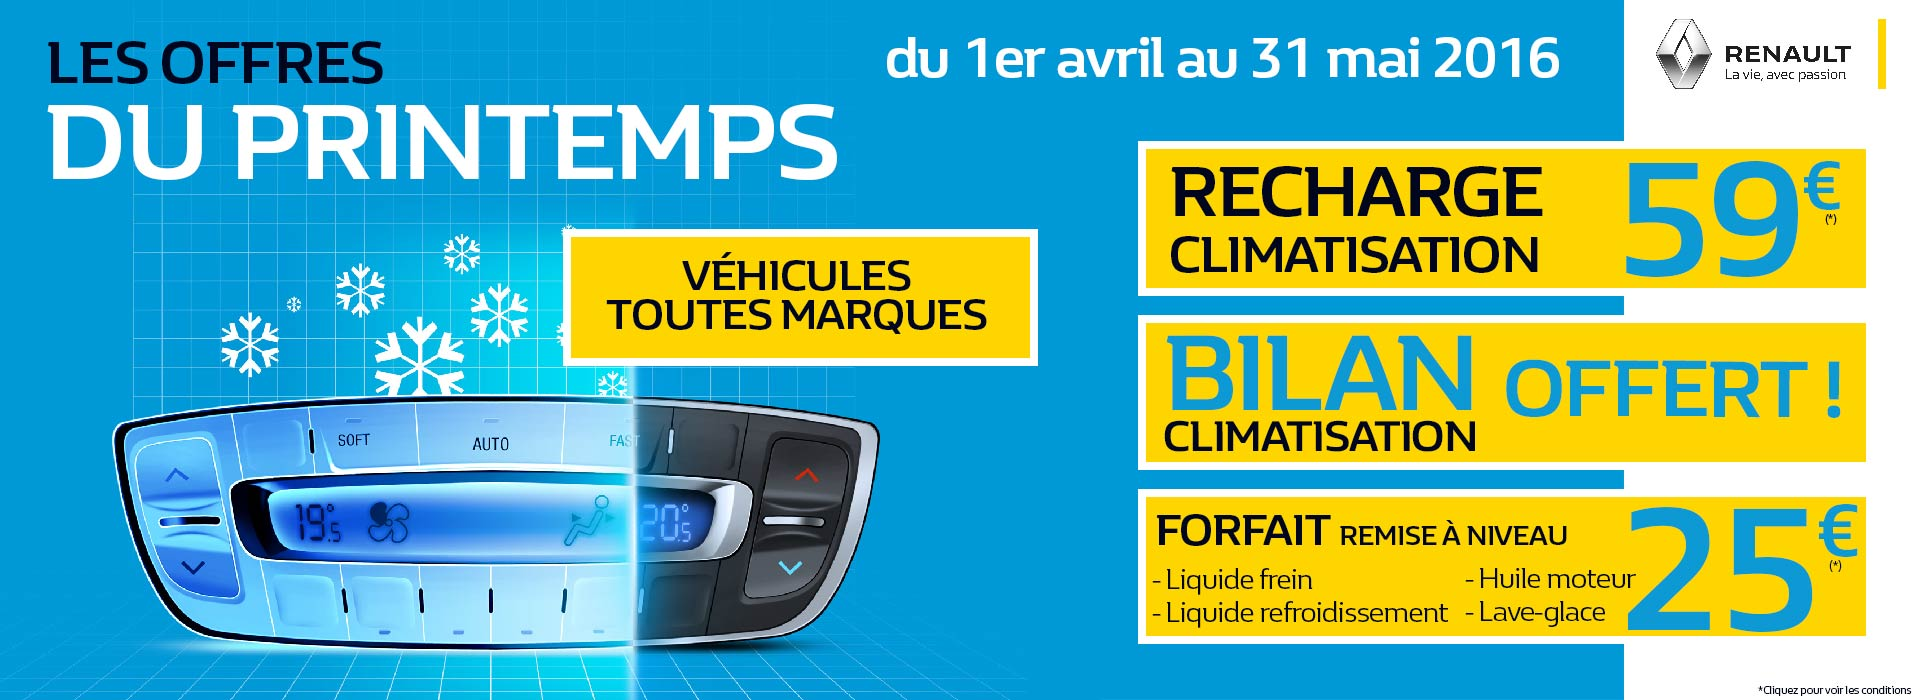 Offre revision Renault promotion chartres chateaudun maintenon epernon